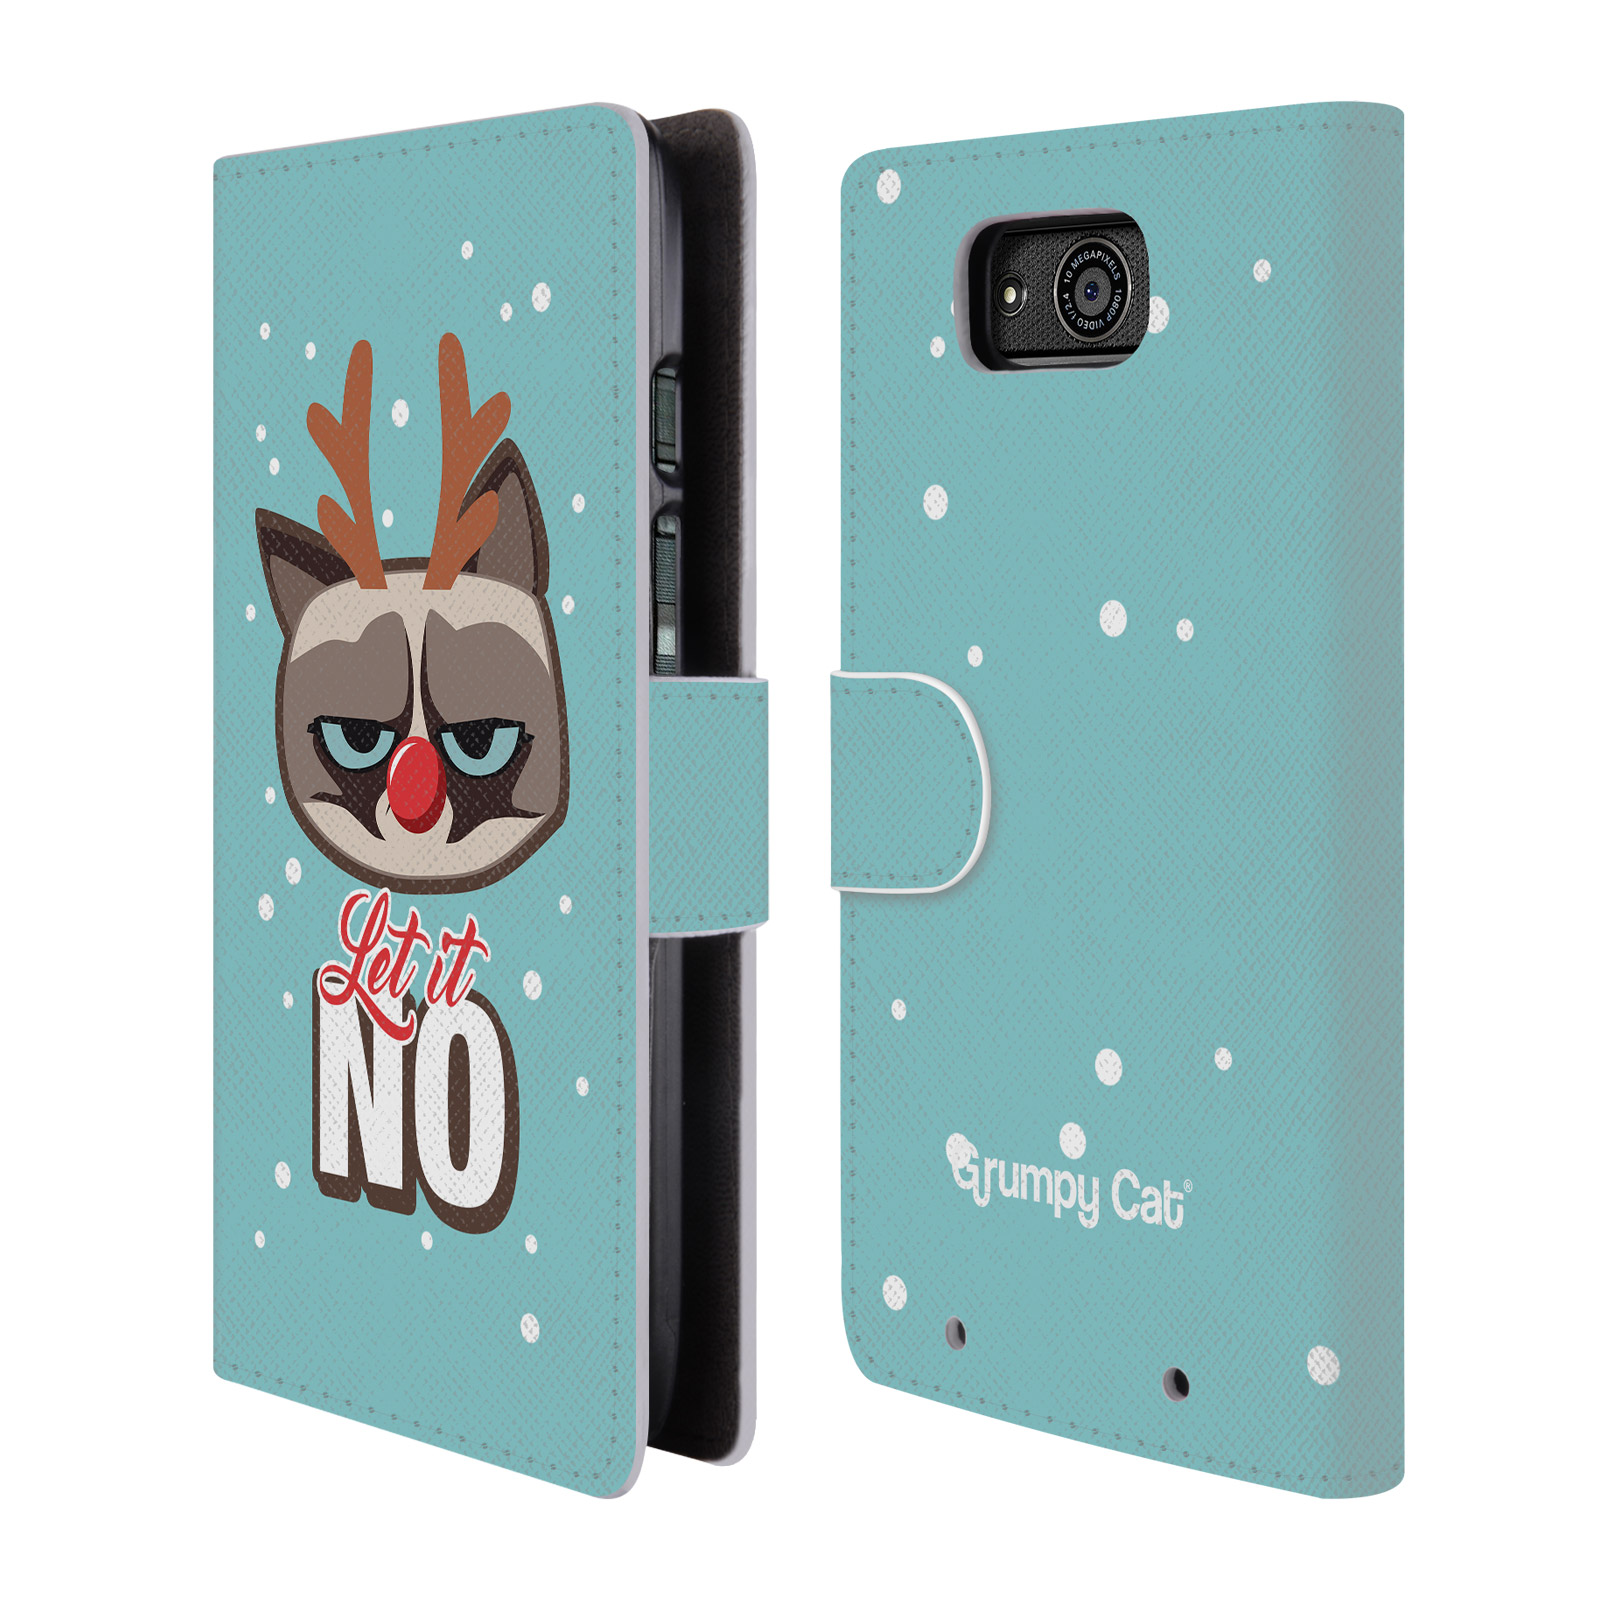 OFFICIAL GRUMPY CAT GRUMPMOJI CHRISTMAS LEATHER BOOK WALLET CASE COVER FOR MOTOROLA PHONES